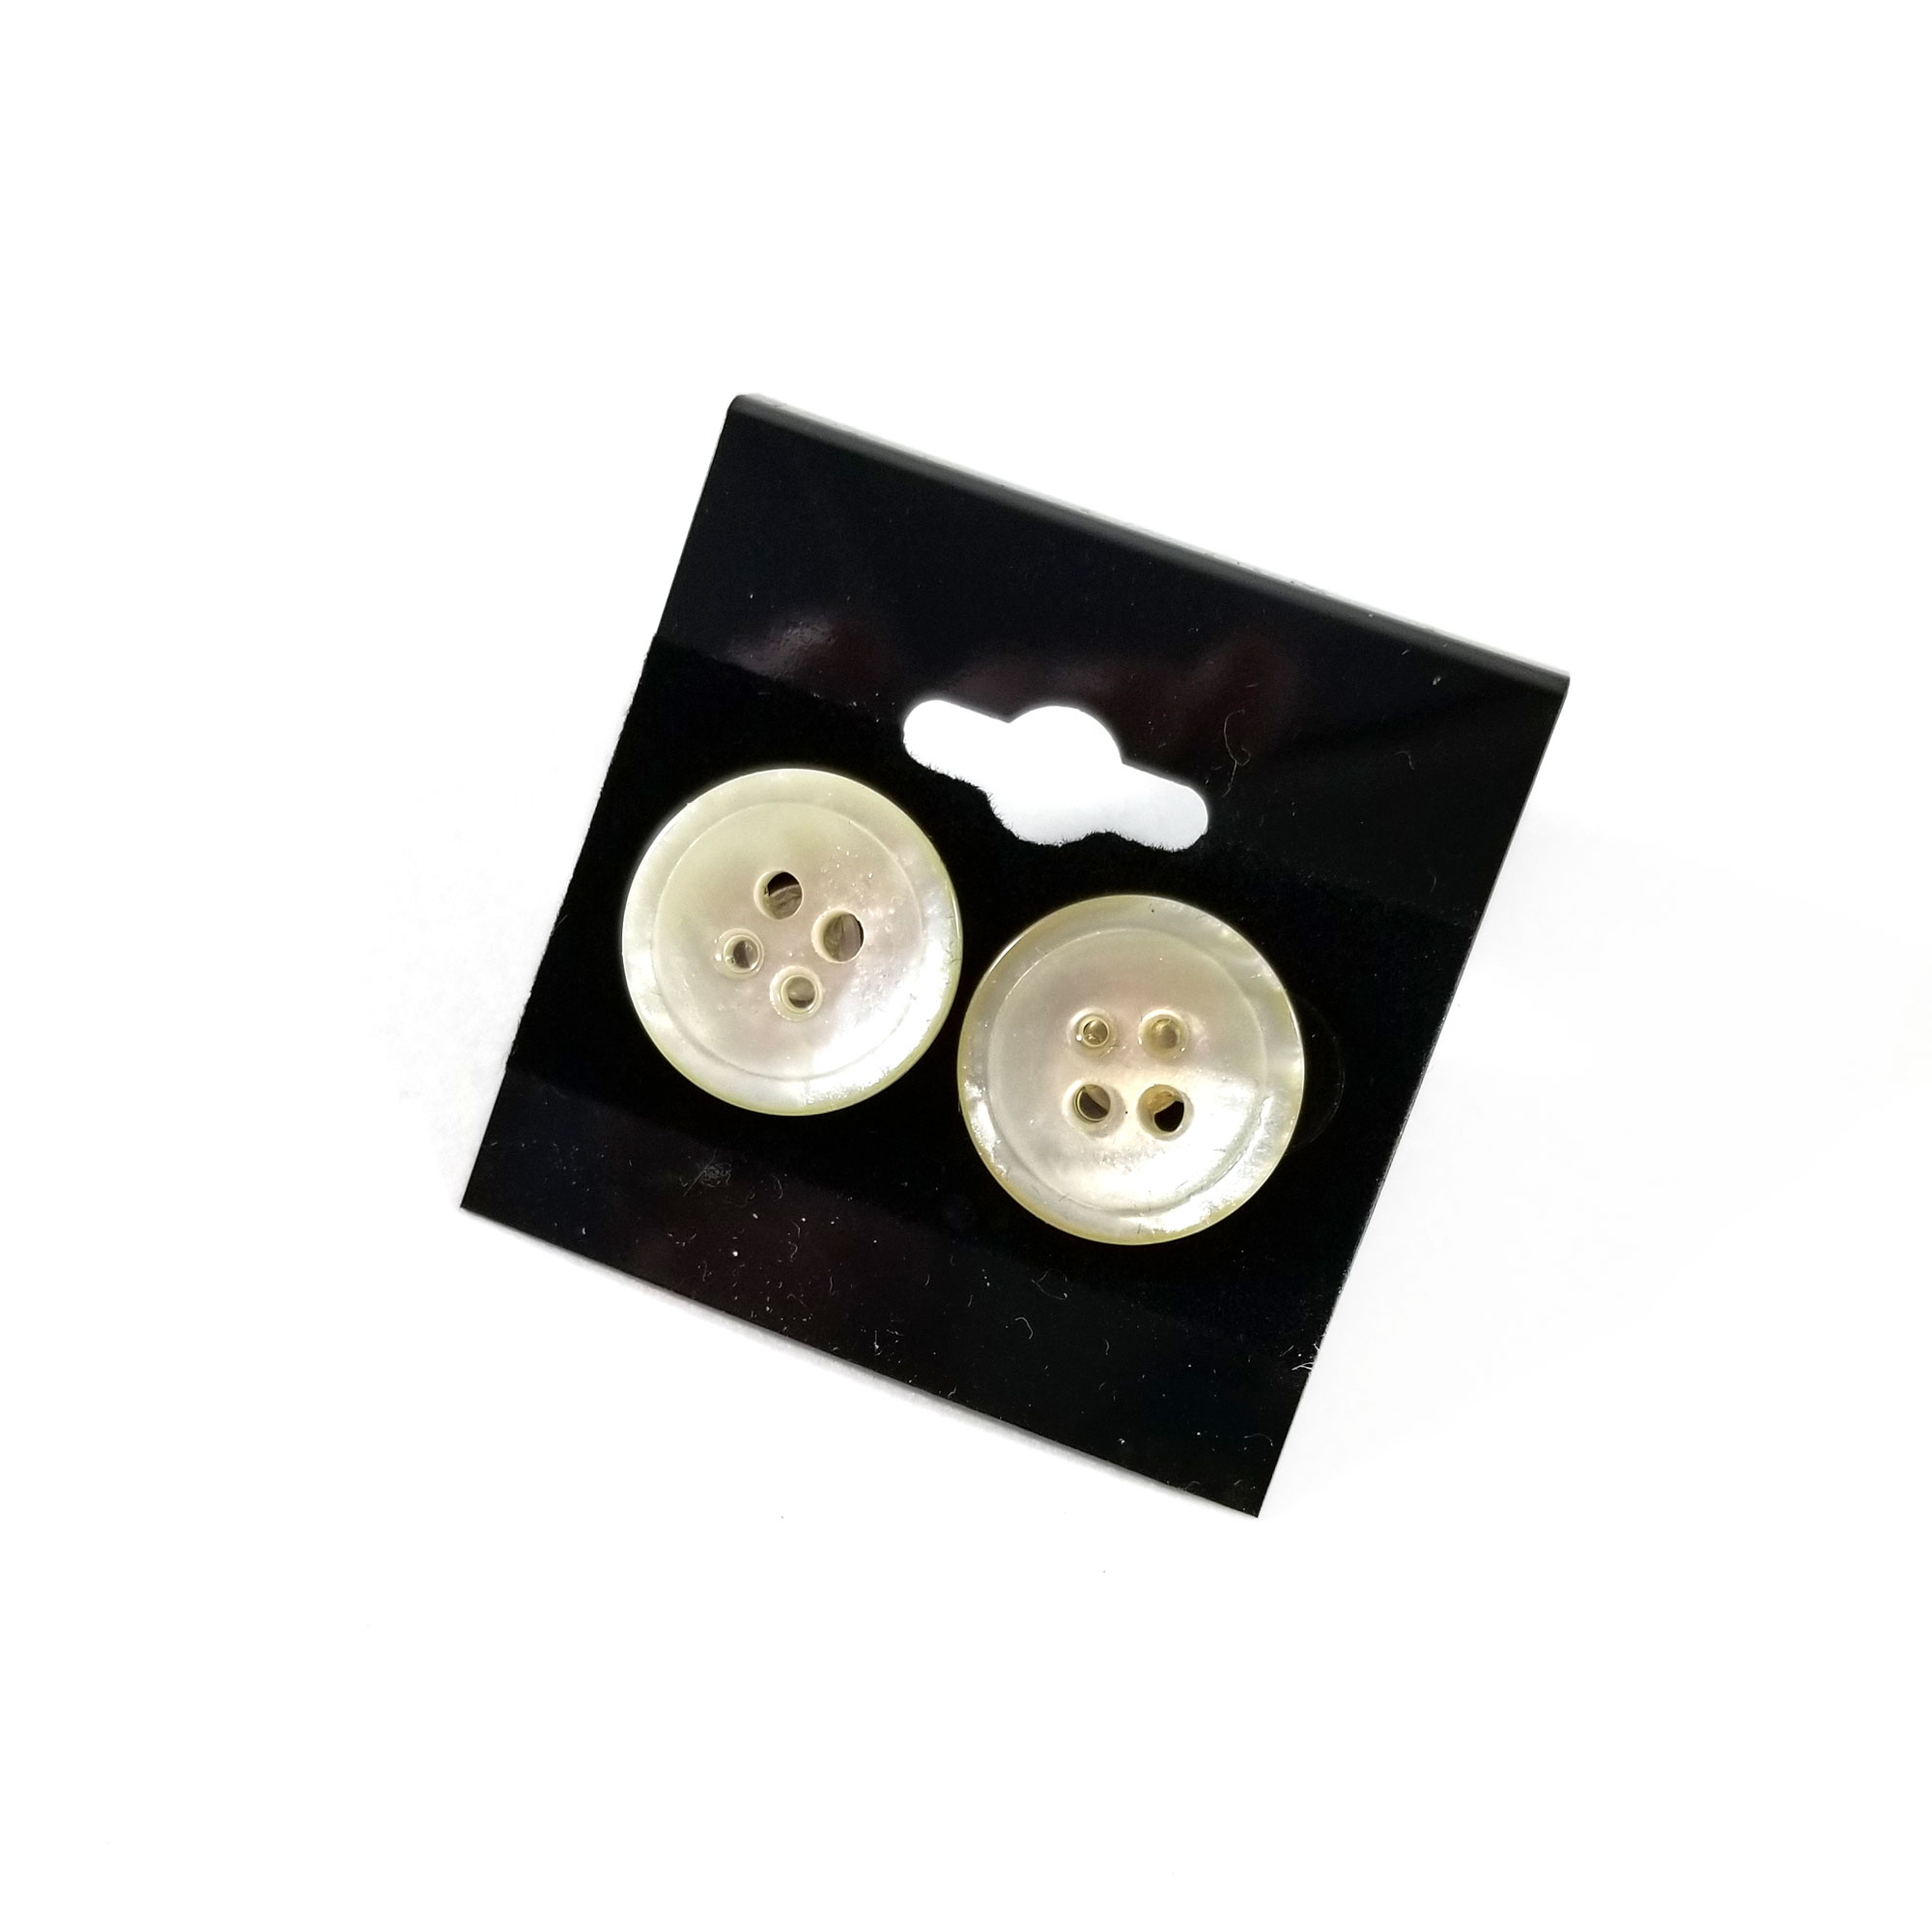 EA013WH1_WhiteButtonEarringsByWildeDesigns_02